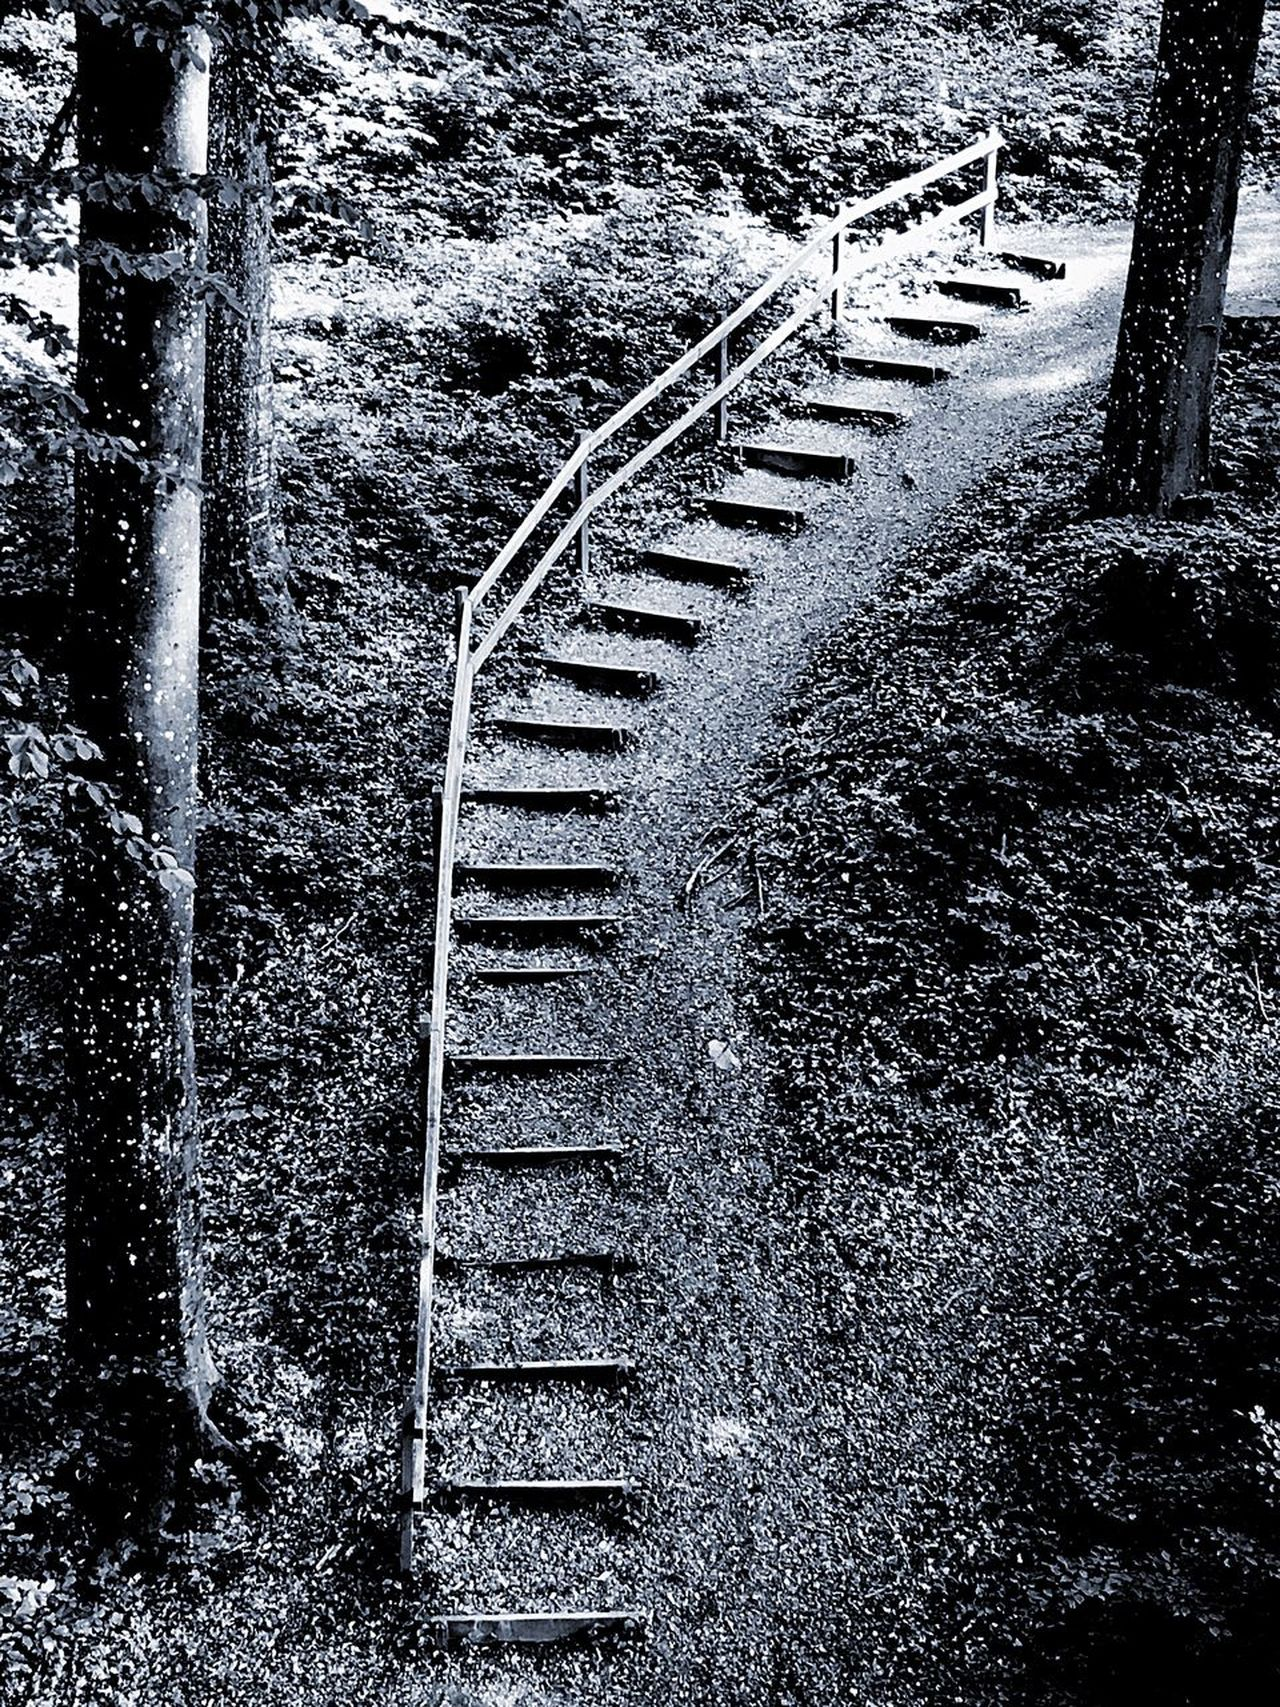 Steps Chemin Sentiero Sentier Outdoors No People The Way Forward Nature Beauty In Nature Black And White Noir Et Blanc Bianco E Nero Stonegraphix Tranquility The Great Outdoors - 2017 EyeEm Awards EyeEmNewHere